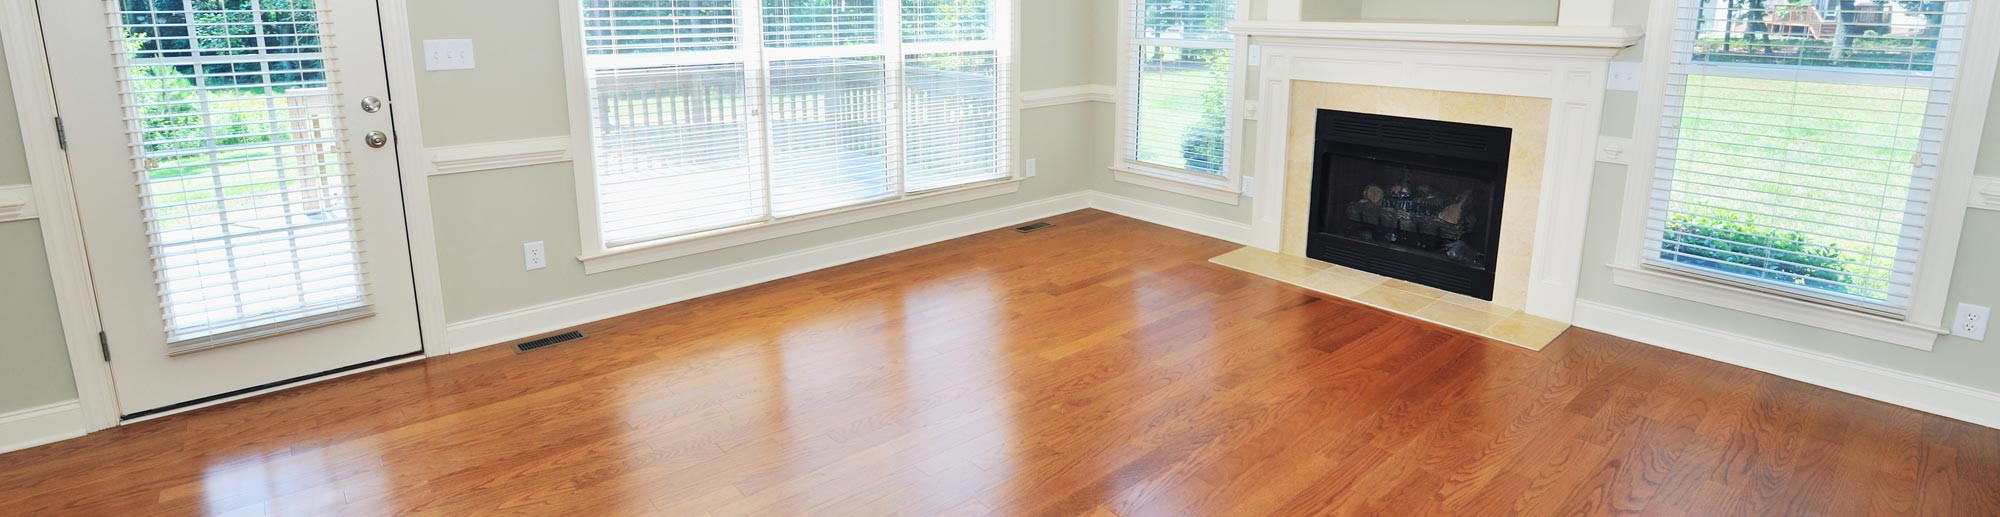 Hardwood Floor Refinishing Racine Wi Of Hardwood Flooring Lake Geneva Designing Wood Floors Oconomowoc Inside Wood Flooring Inviting Clean